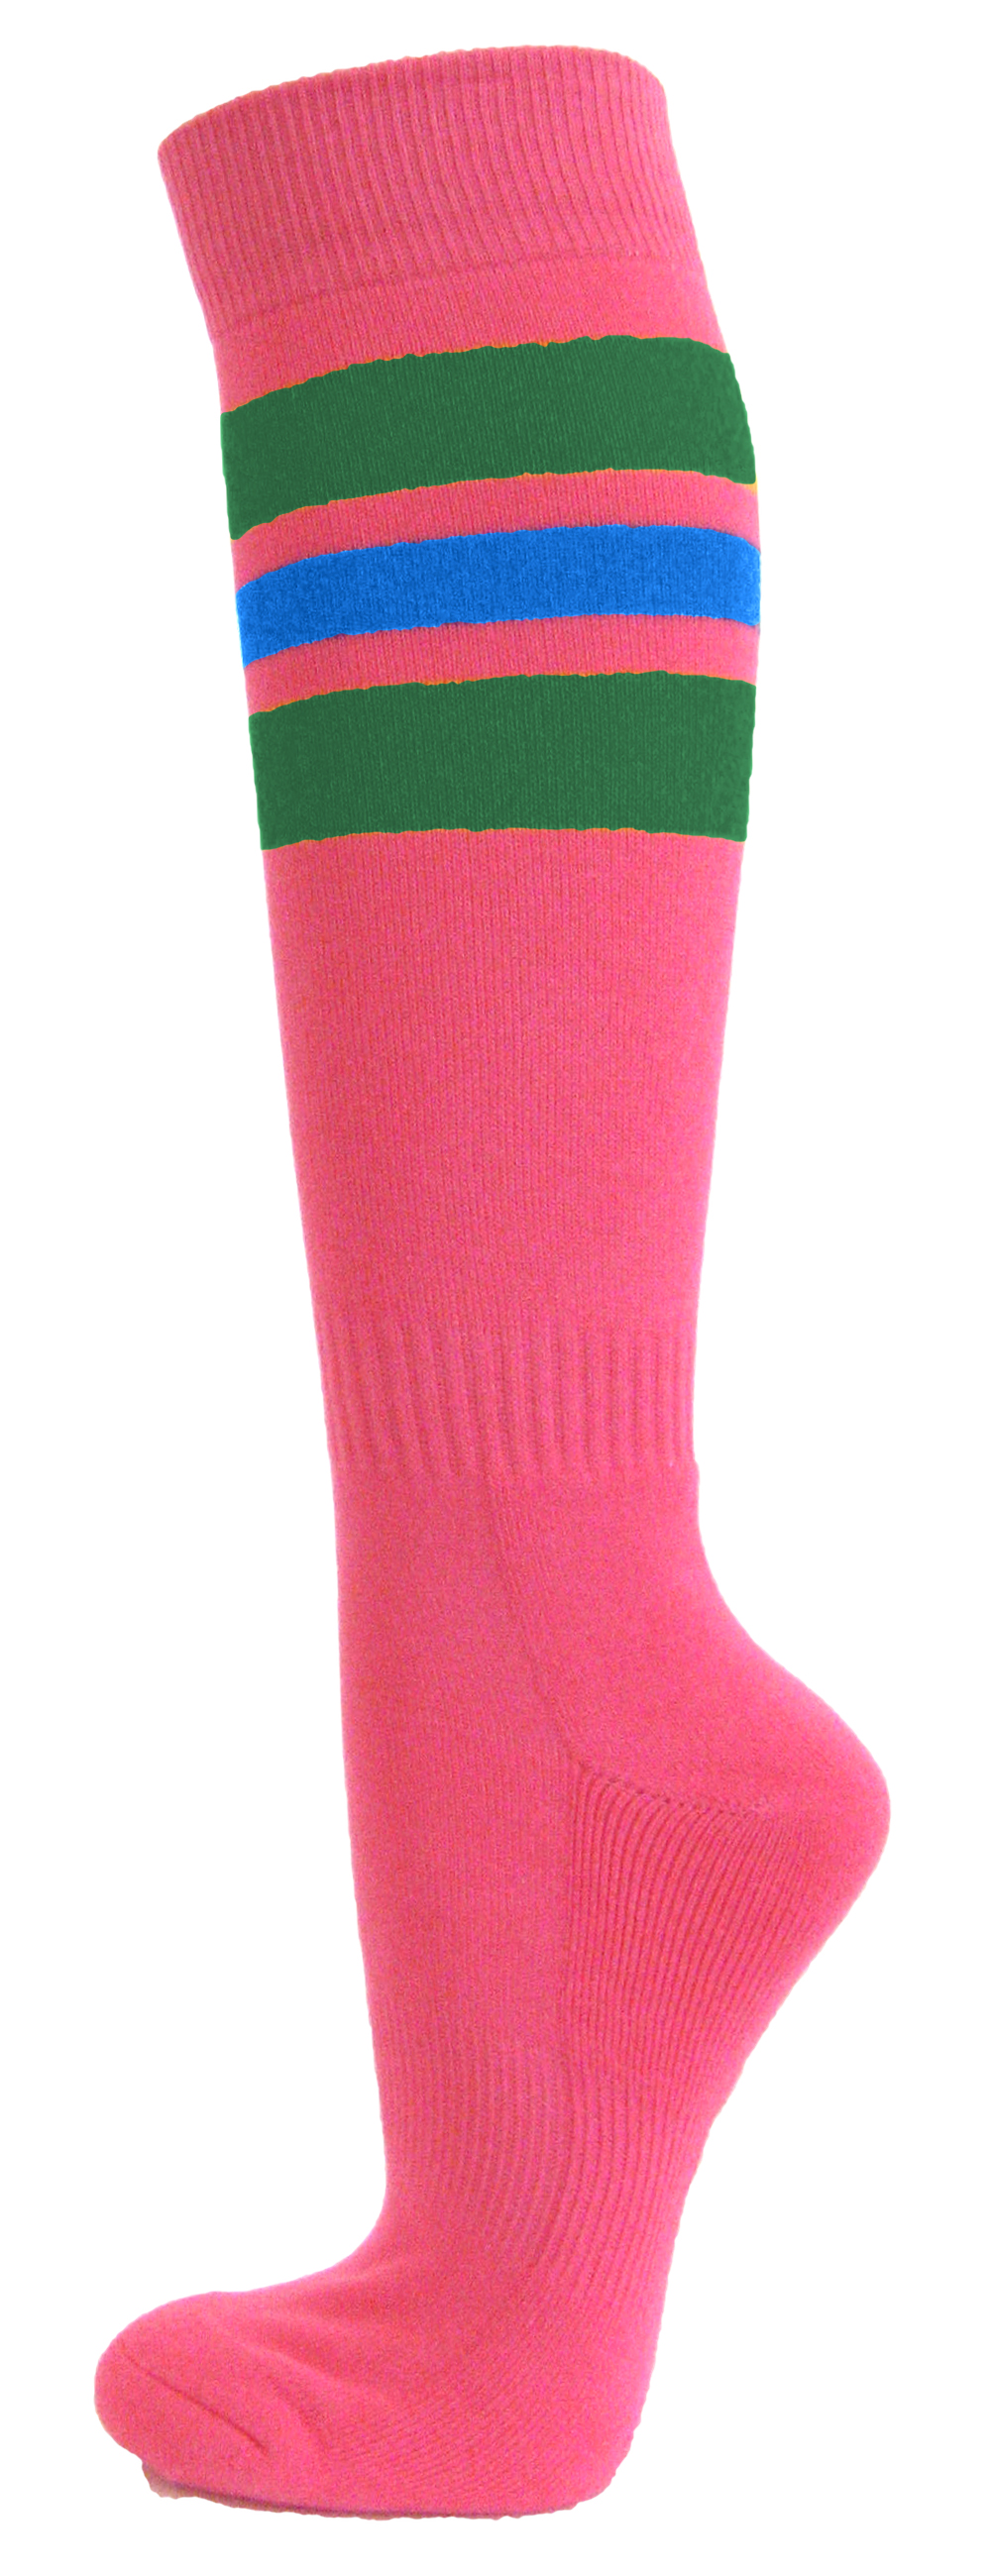 Couver Bright Pink Breast Cancer Awareness Strpied Athletic Tube Knee High  Socks, Green / Bright Blue Medium - Walmart.com